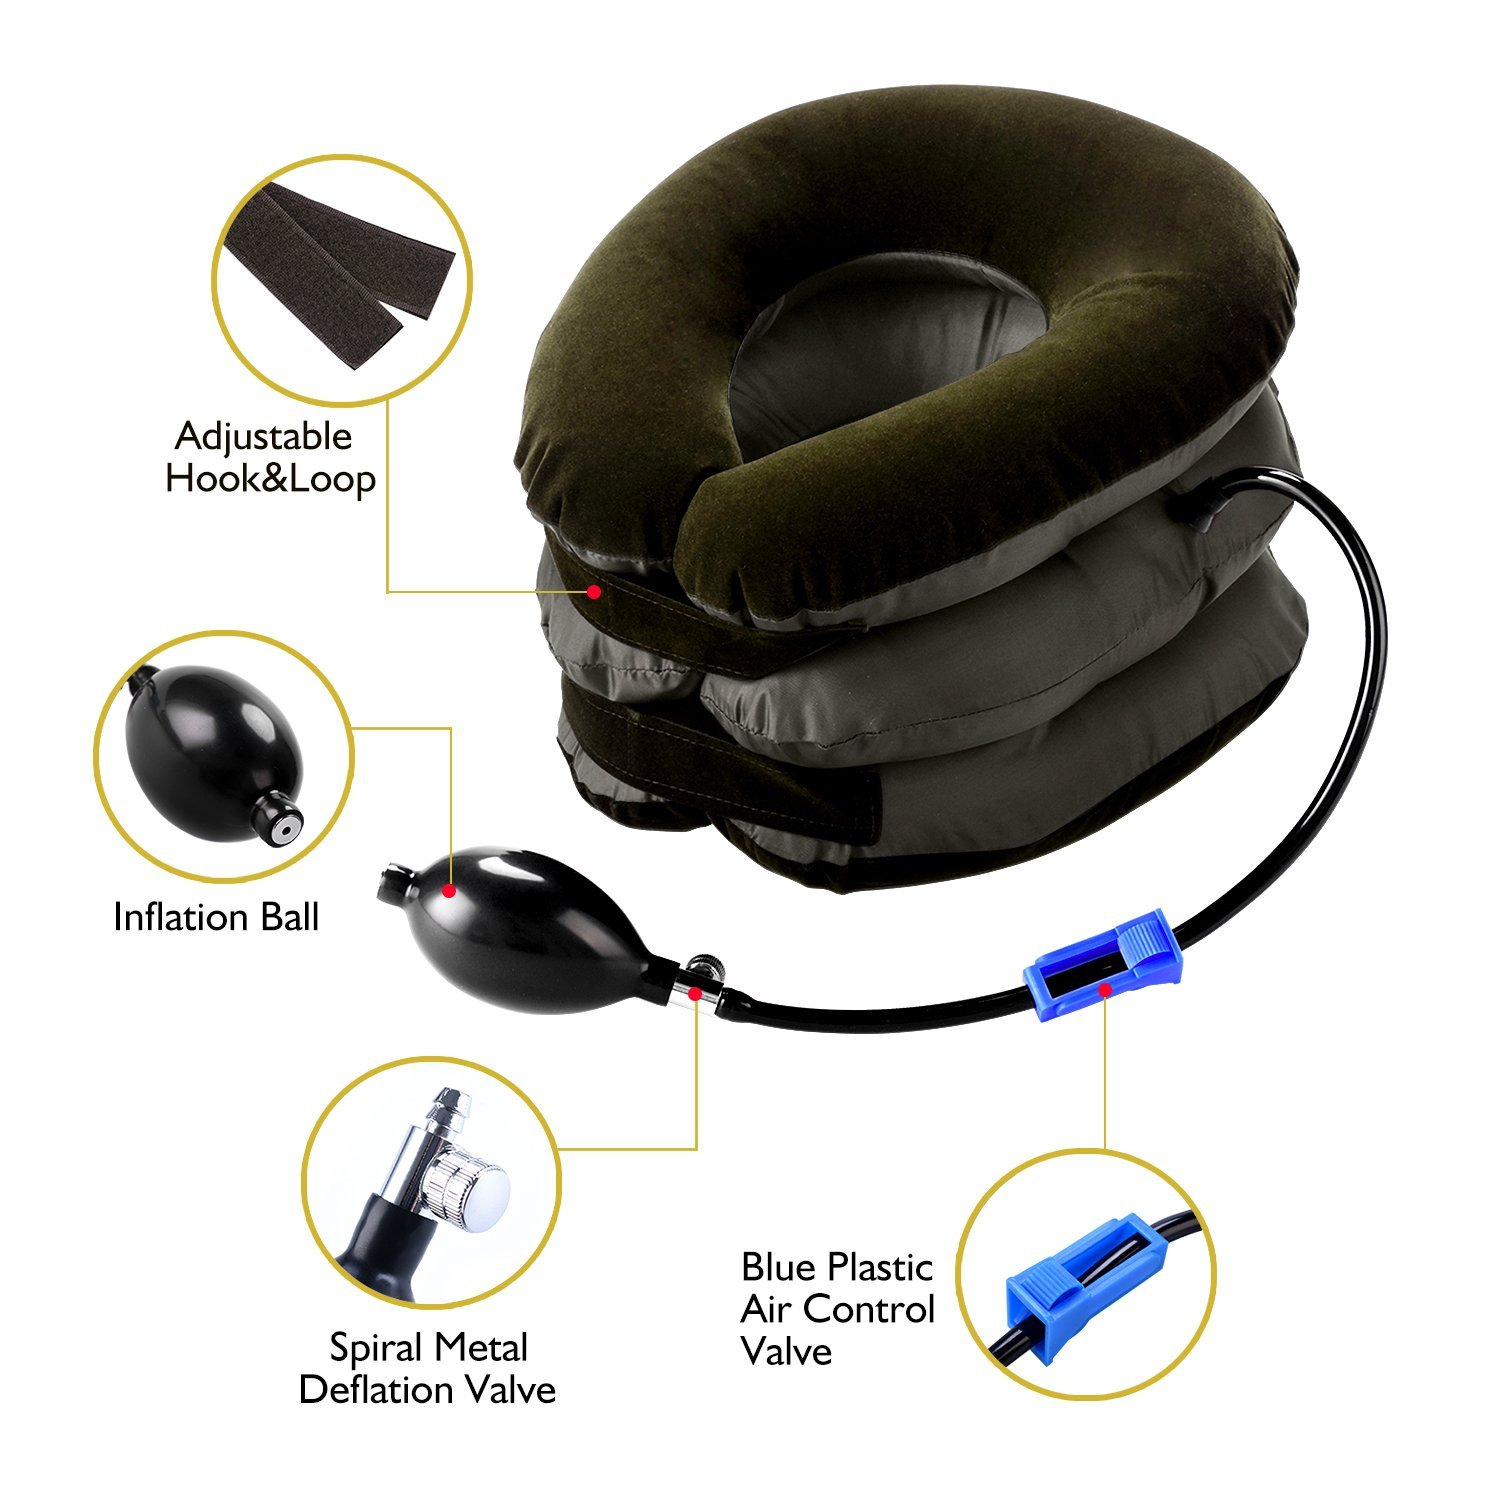 P PURNEAT Cervical Neck Traction Device – Instant Pain Relief for Chronic Neck and Shoulder Pain – Effective Alternate Pain Relieving by P PURNEAT (Image #3)